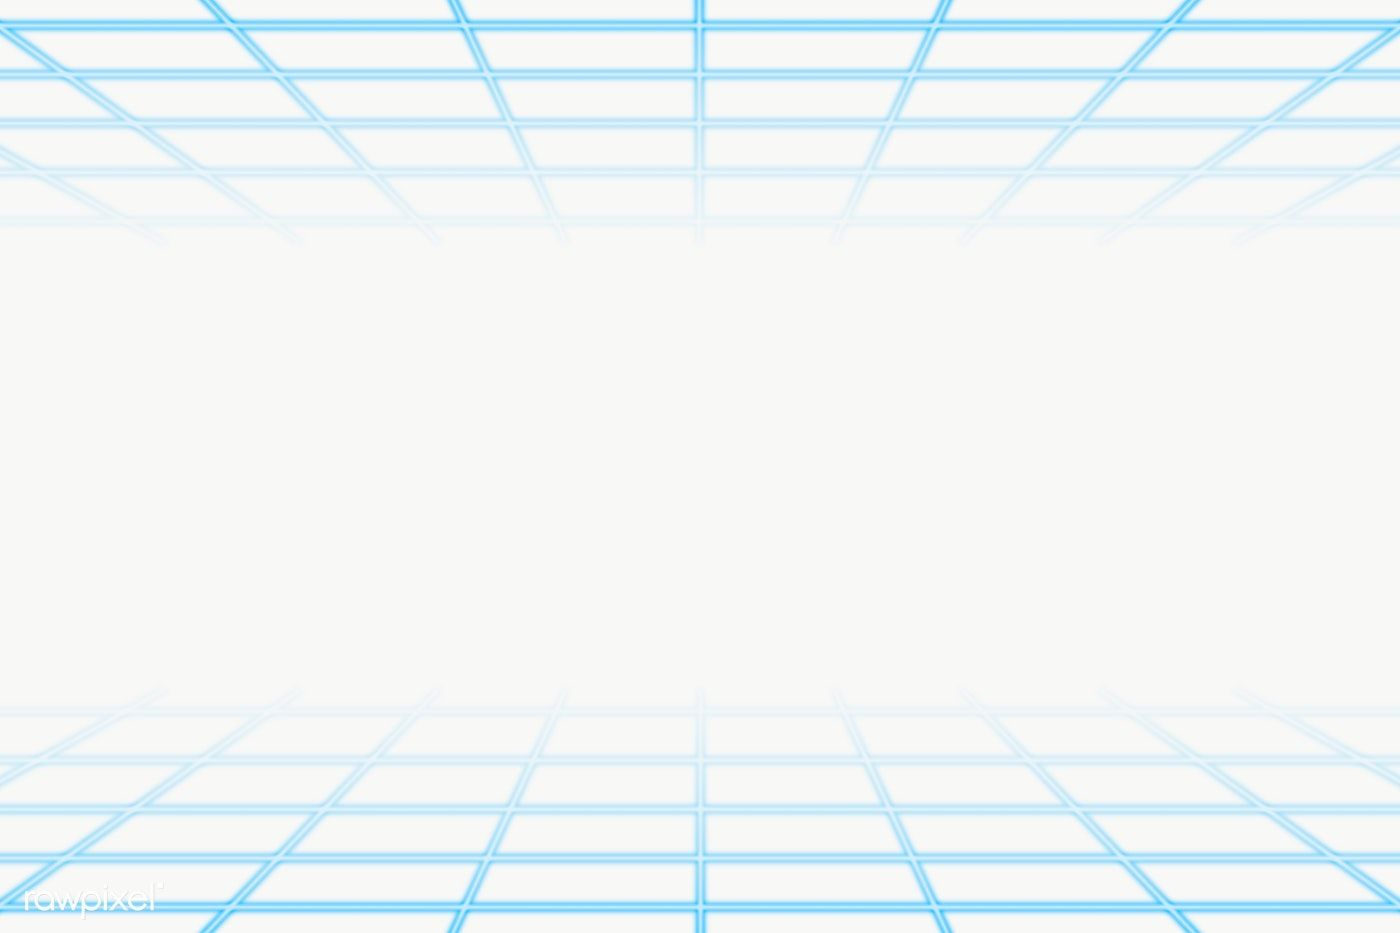 Fading Grid Patterned Blue Background Layer Free Image By Rawpixel Com Aum In 2021 Blue Backgrounds Backdrops Backgrounds Grid Pattern